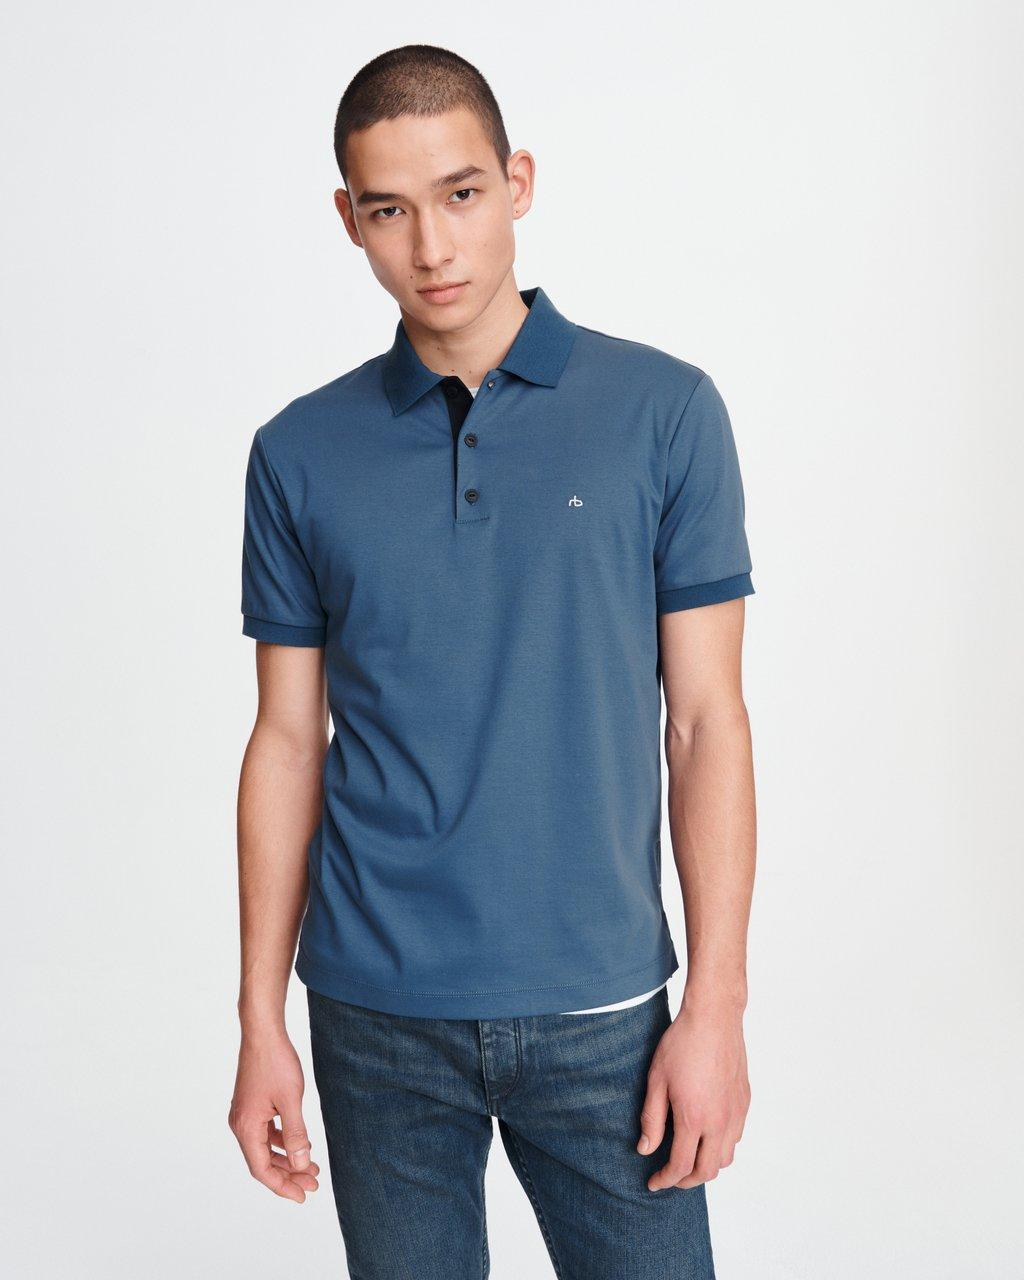 Interlock Cotton Polo